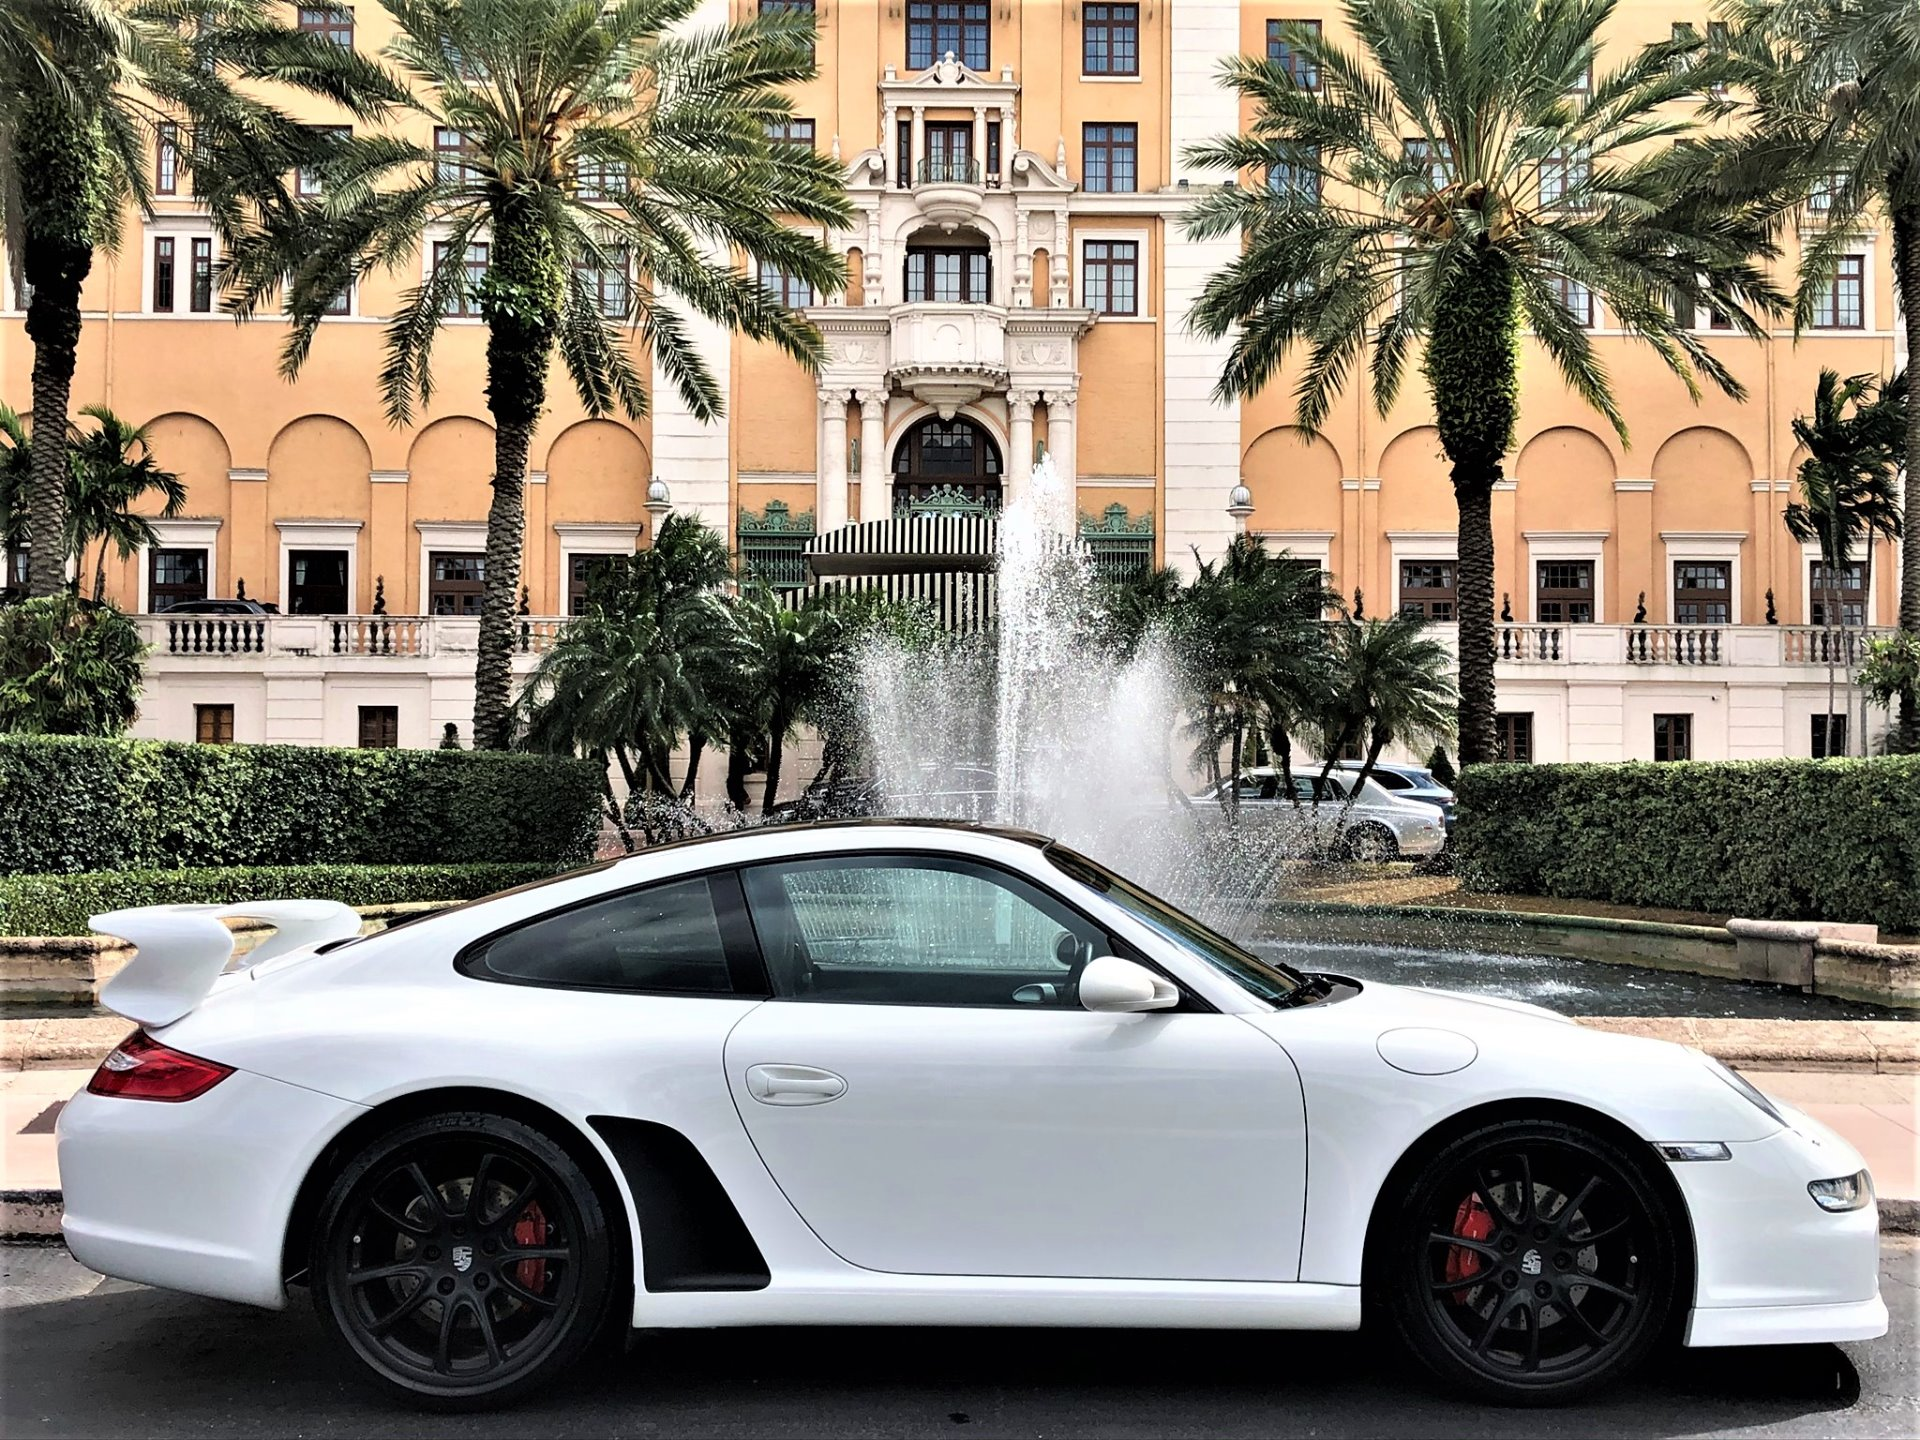 Used 2007 Porsche 911 Carrera S for sale Sold at The Gables Sports Cars in Miami FL 33146 1